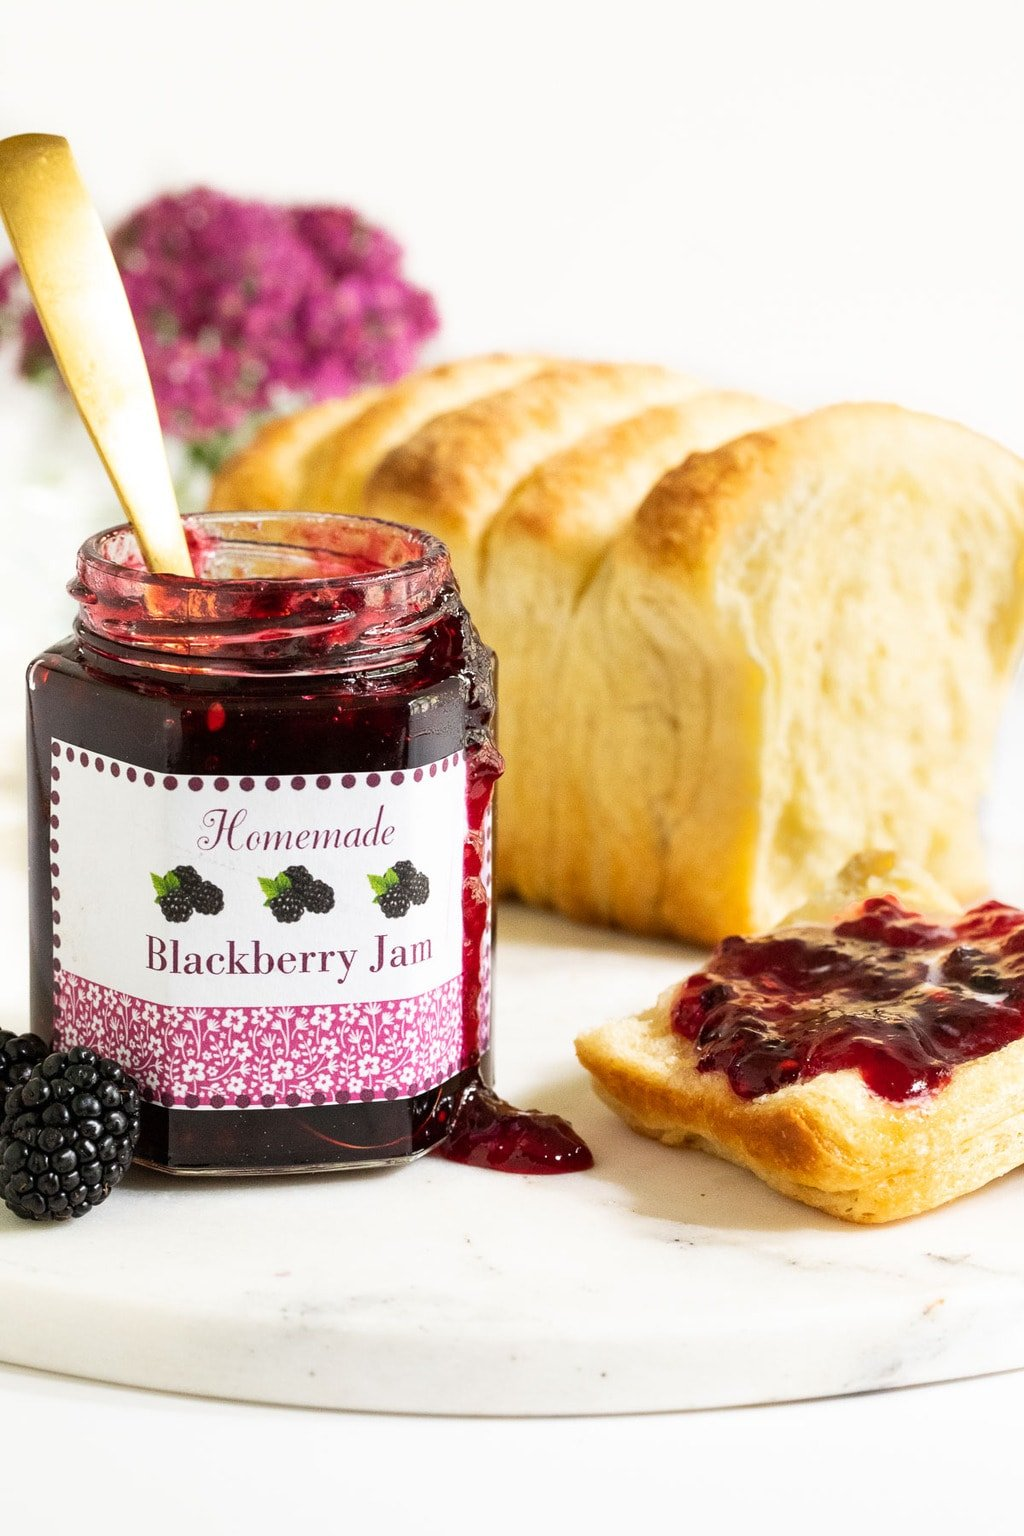 Vertical closeup photo of a jar of Easy 30-Minute Blackberry Freezer Jam. A slice of bread with jam on top is next to the jar and a loaf of homemade brioche bread is in the background.